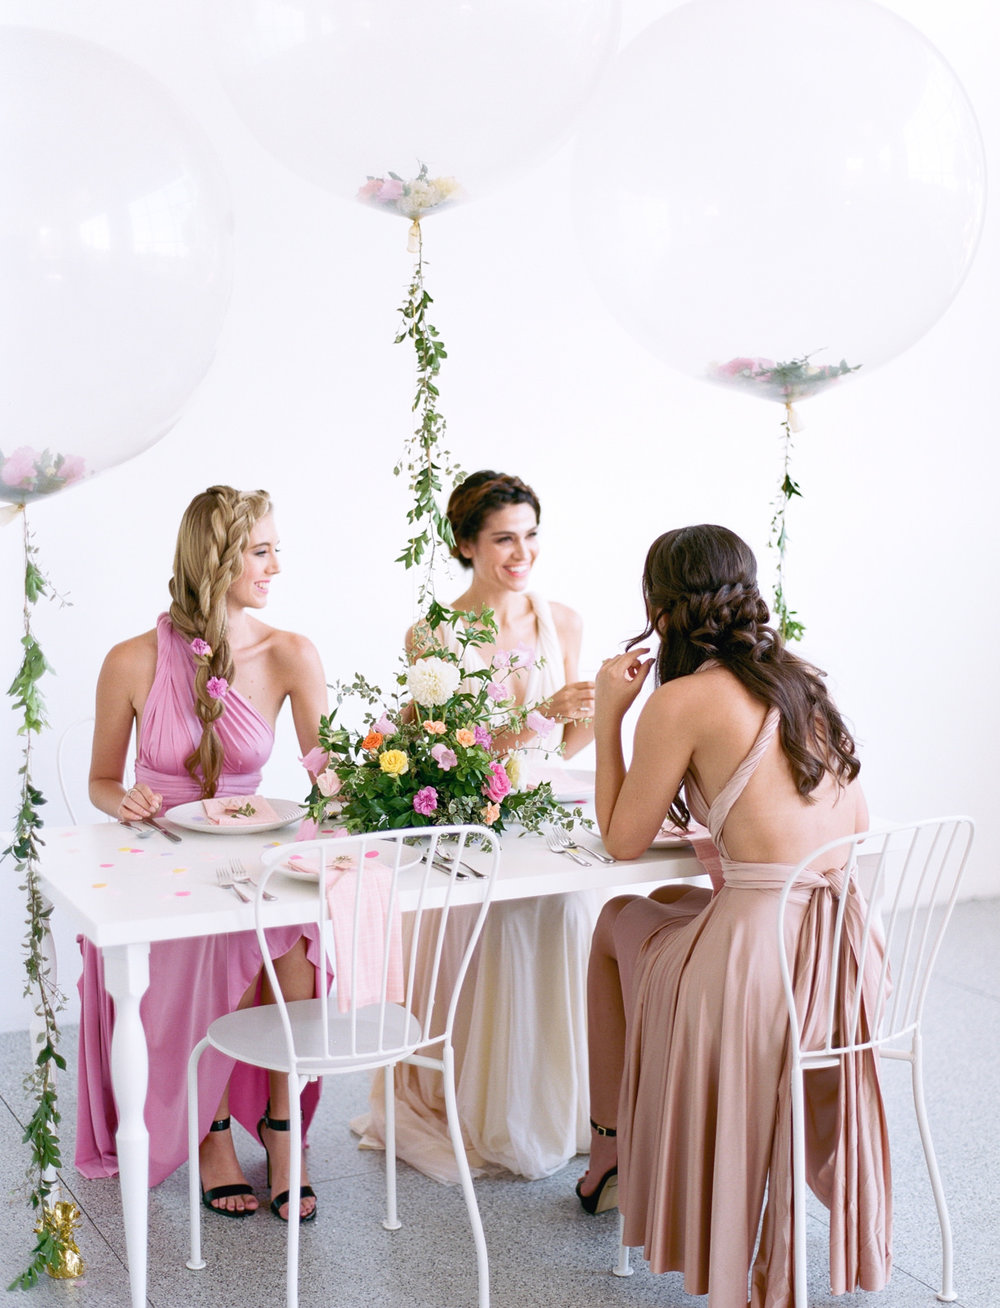 weareorigami_whimsicalbridalshower_editorial_lr-191.jpg